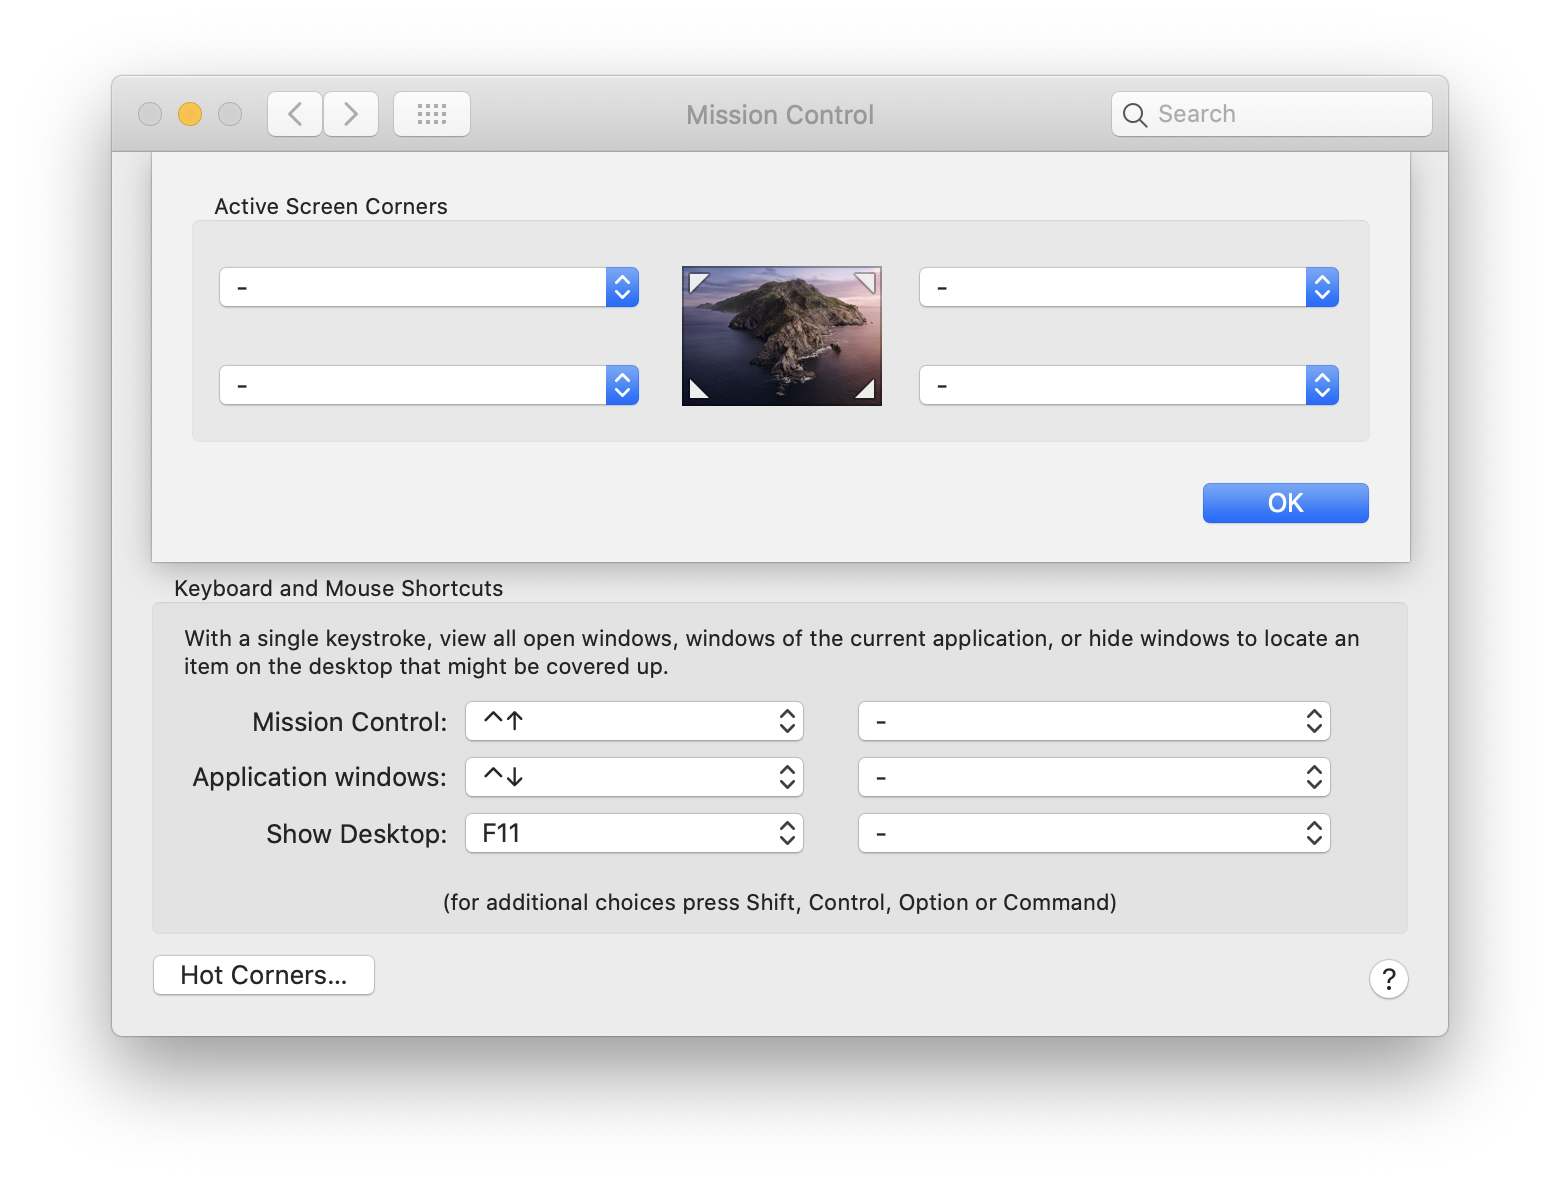 System Preferences - Mission Control - Hot Corners